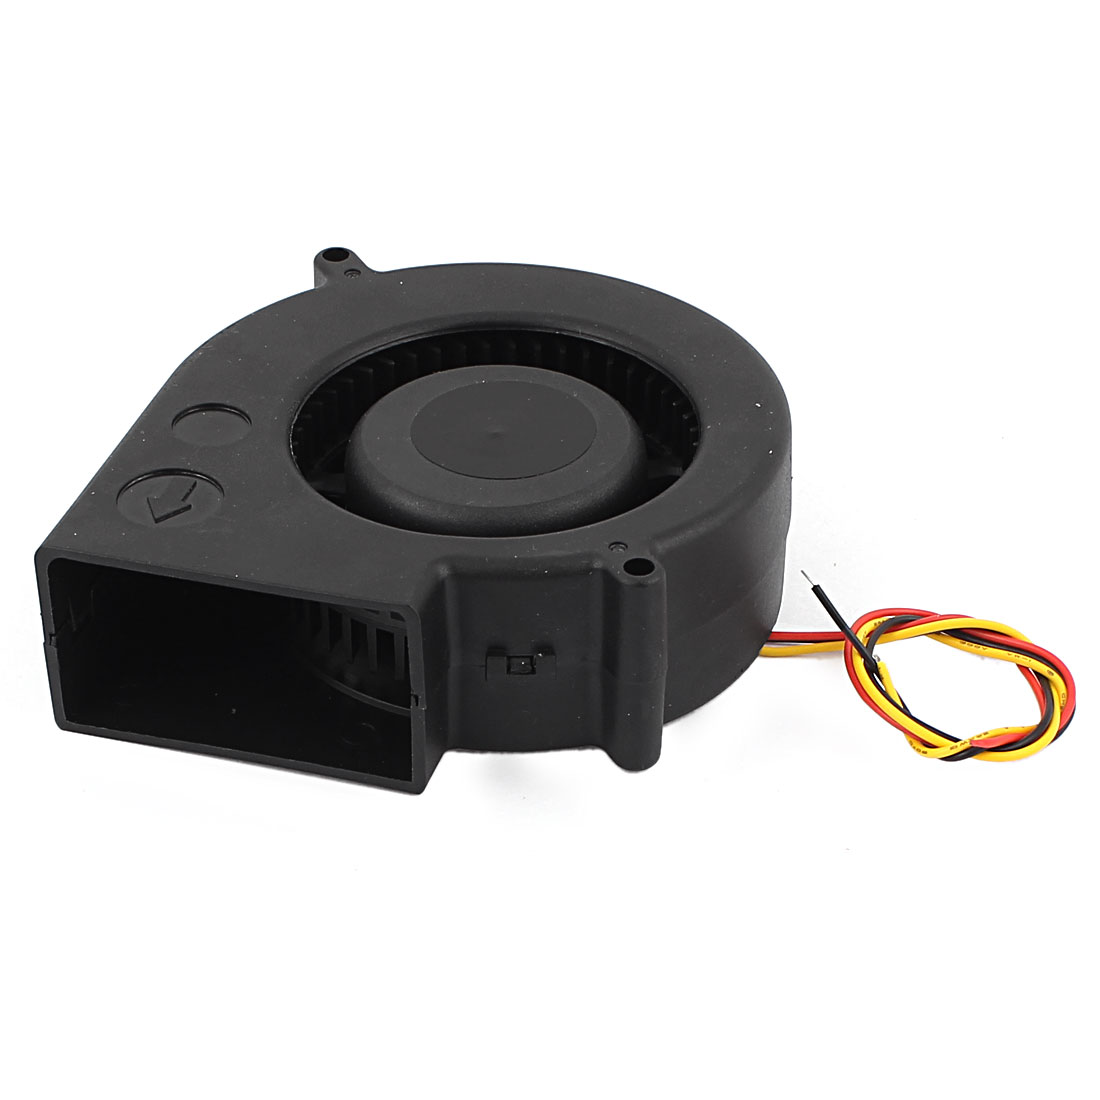 Desktop Connector CPU Cooler Cooling Blower Fan 12VDC 0.13A Black